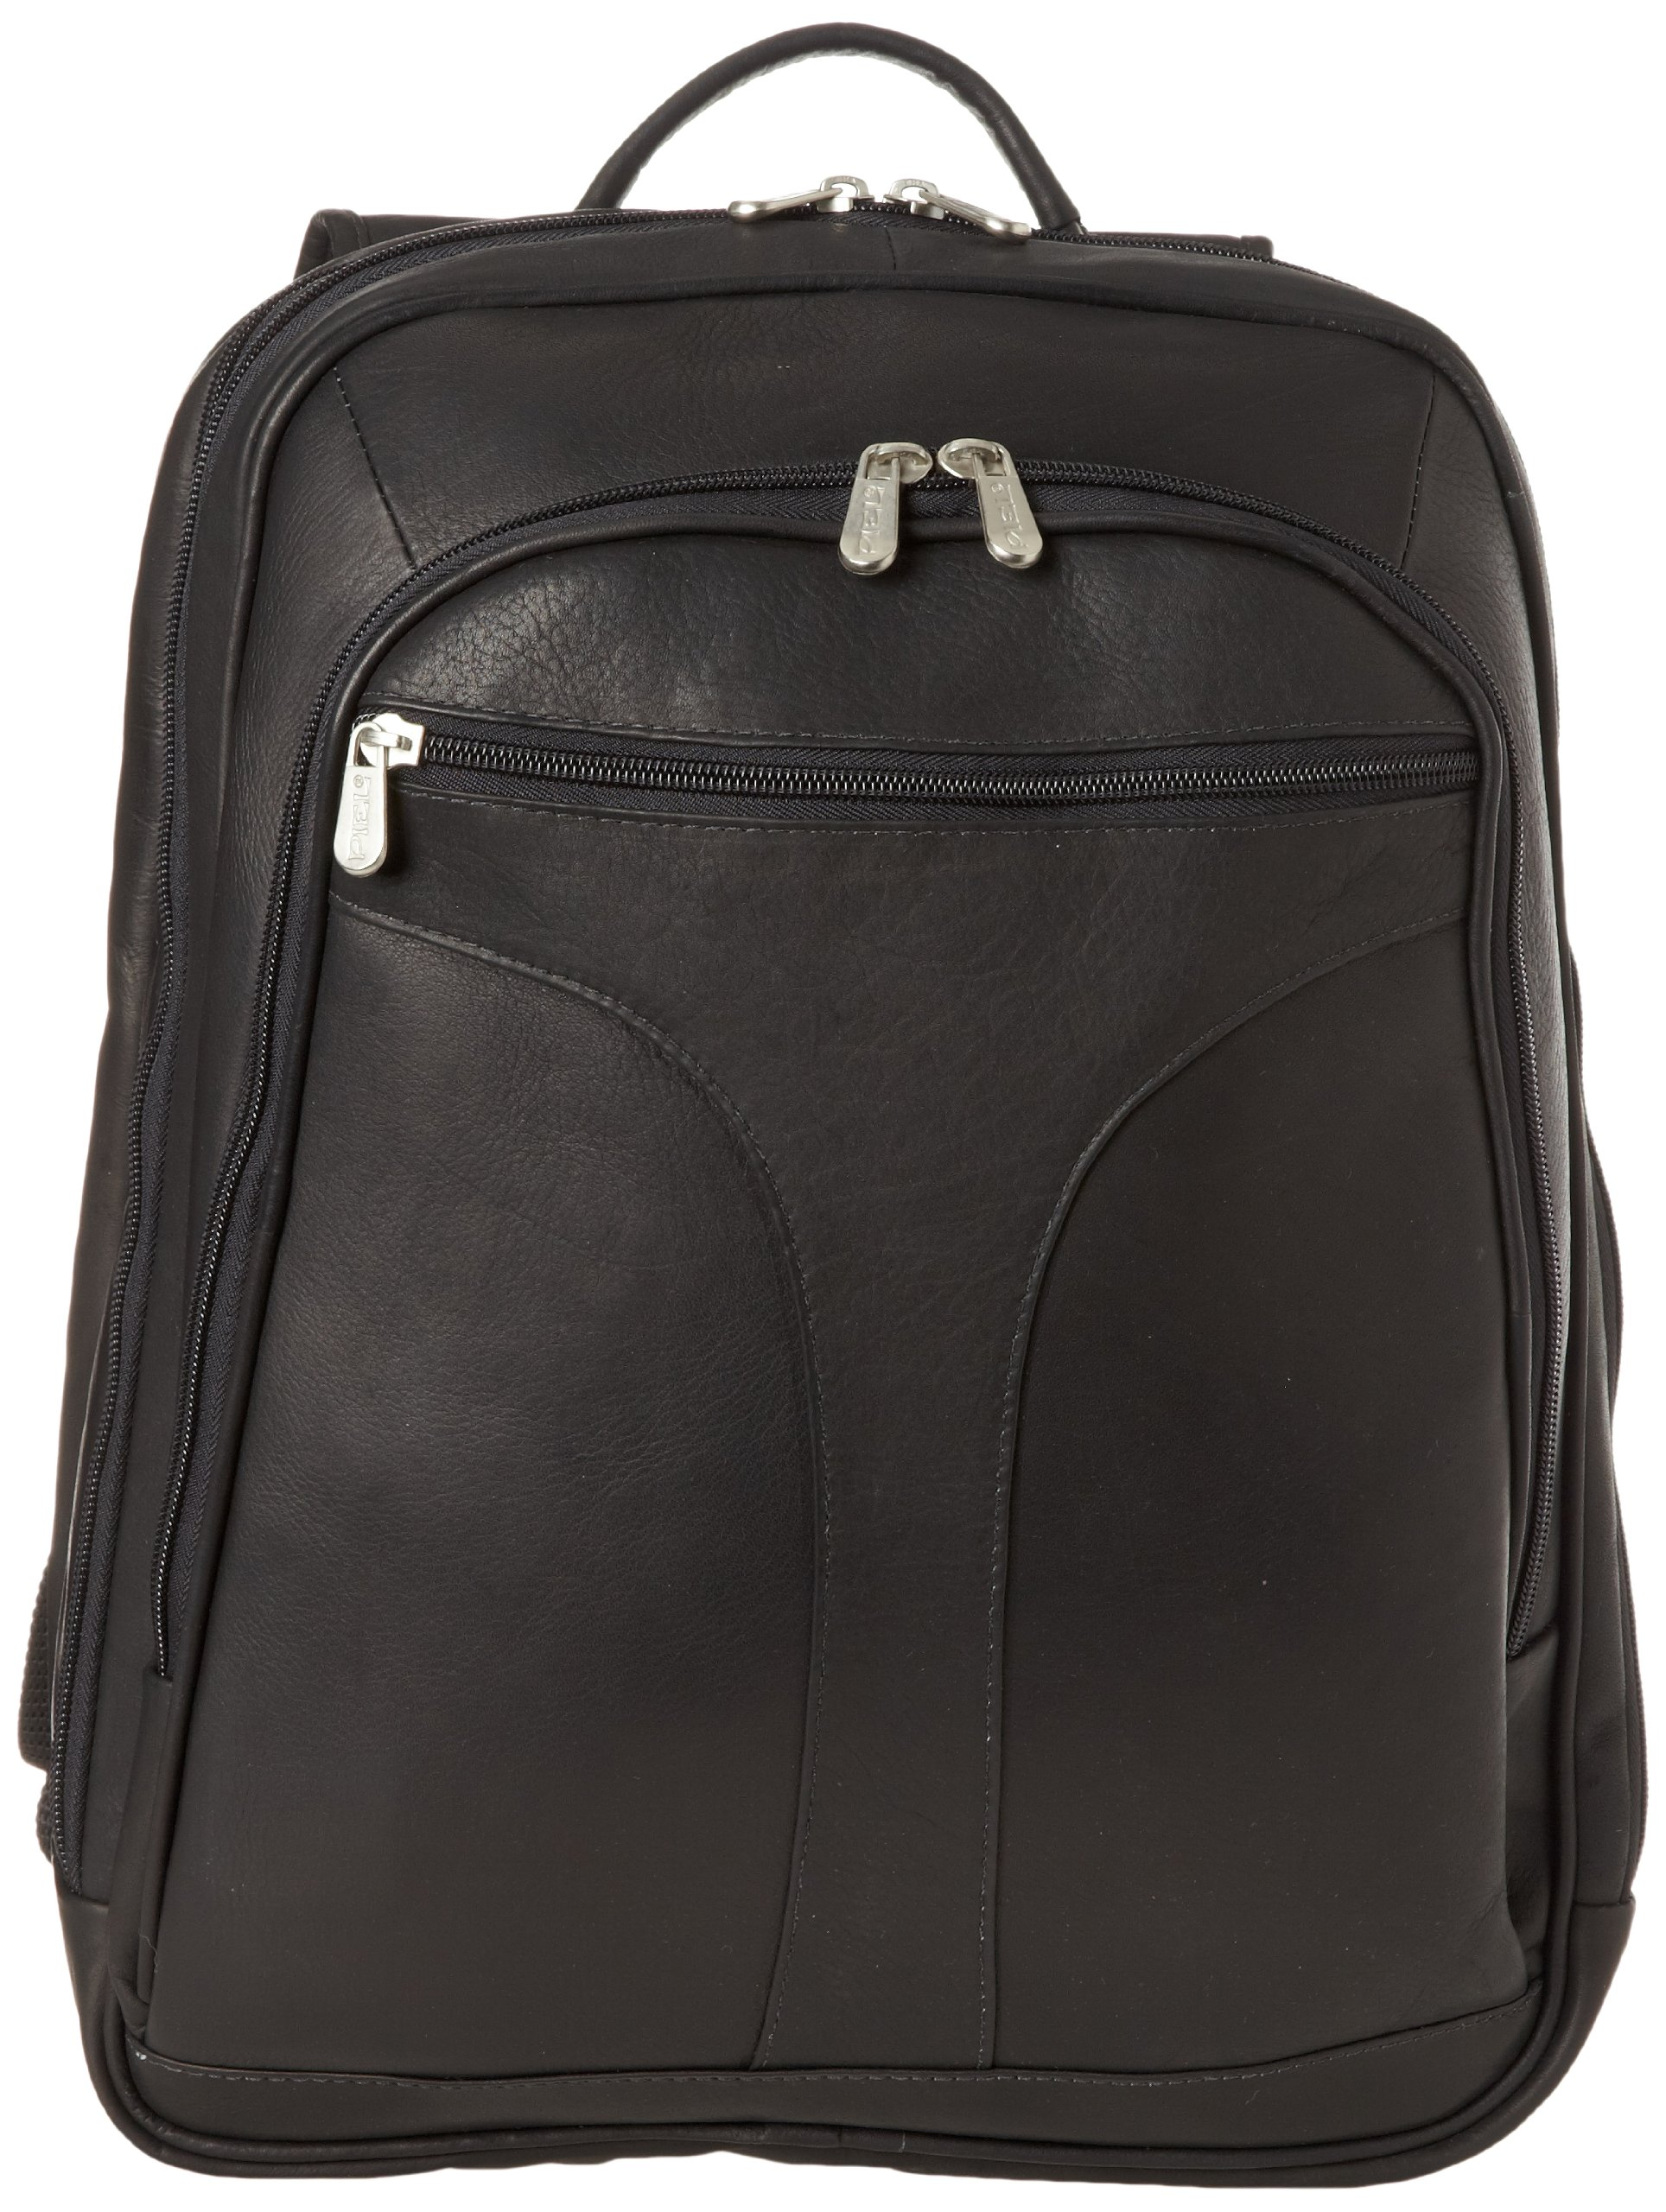 Piel Leather Checkpoint Friendly Urban Backpack, Black, One Size